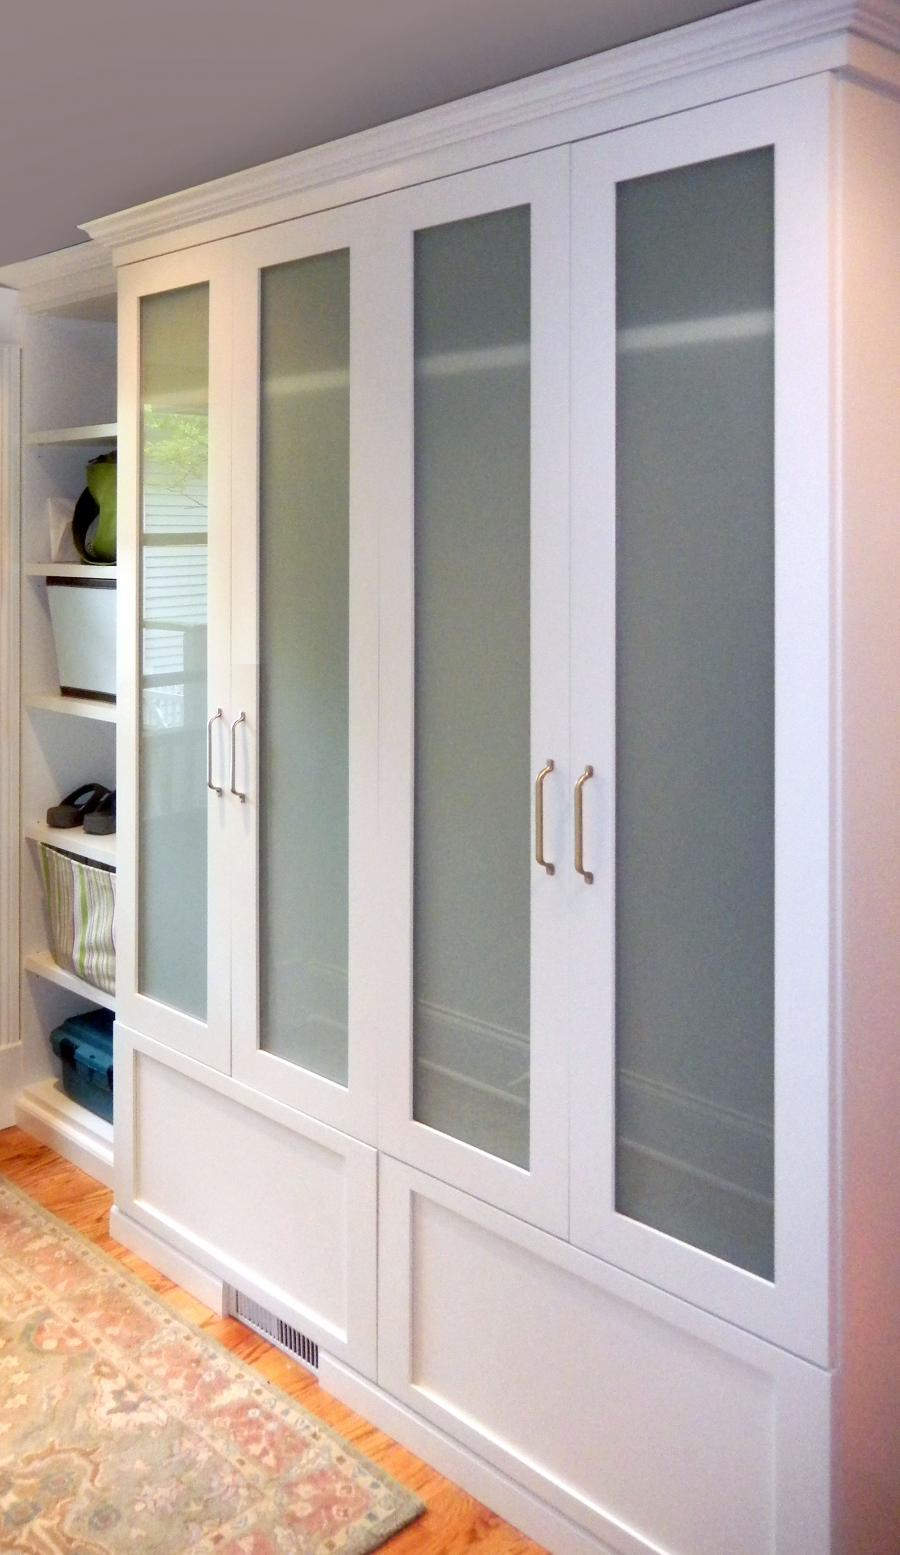 Interior Home Mudroom Designs 4 Home Mudroom Design Ideas Mudroom...